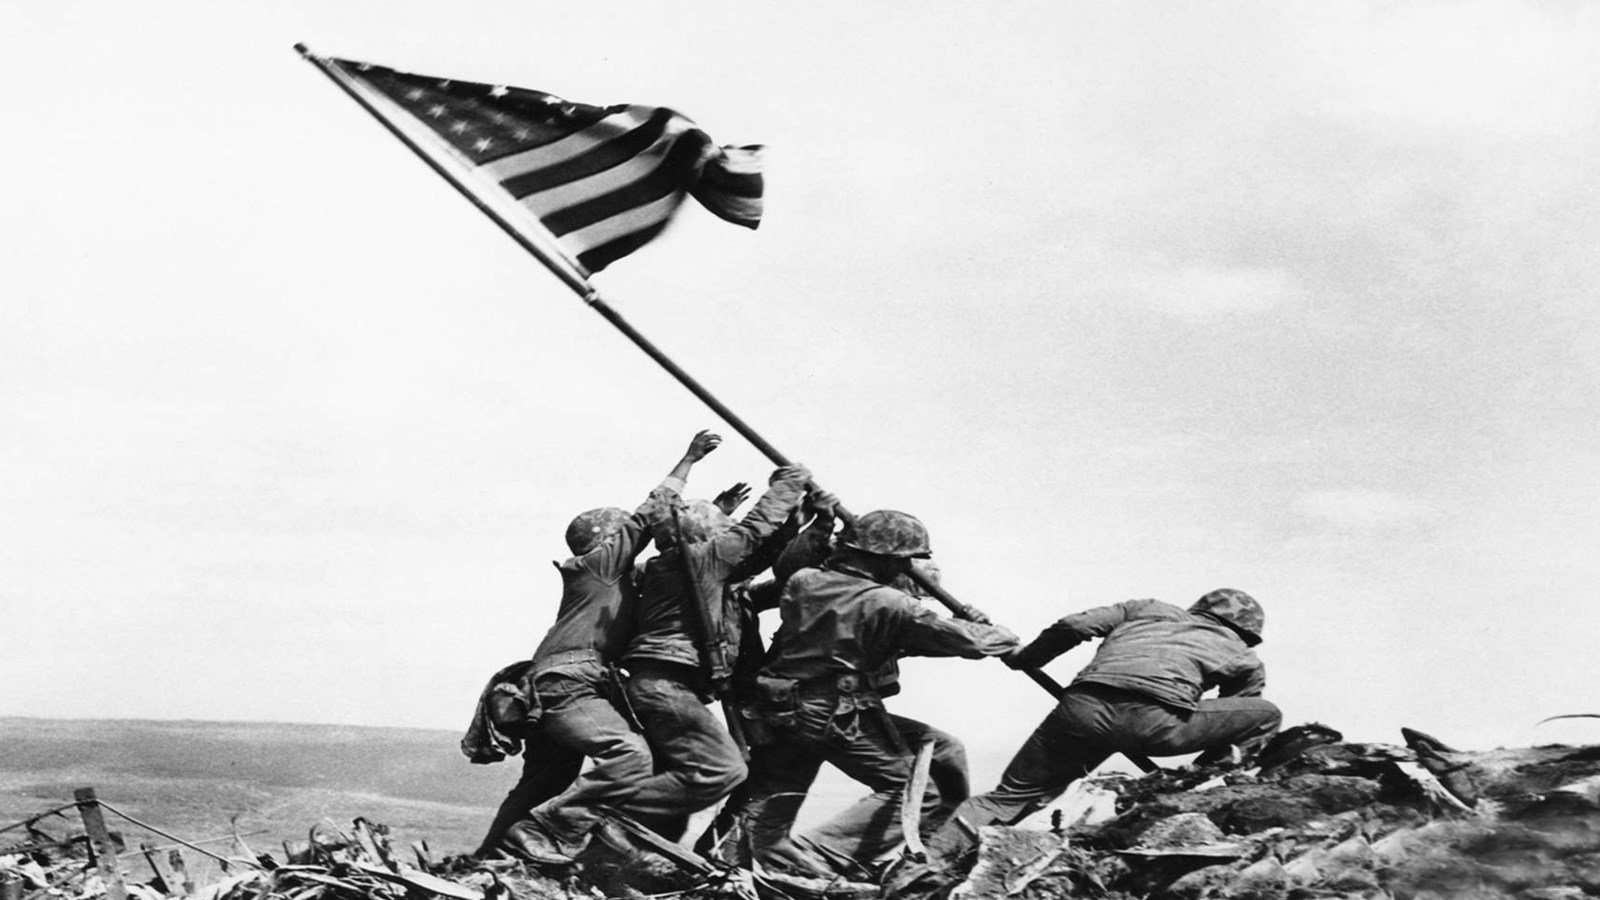 VIDEO Last Living Iwo Jima Medal of Honor Recipient Paid a Touching Tribute to a Marine Who Saved His Life